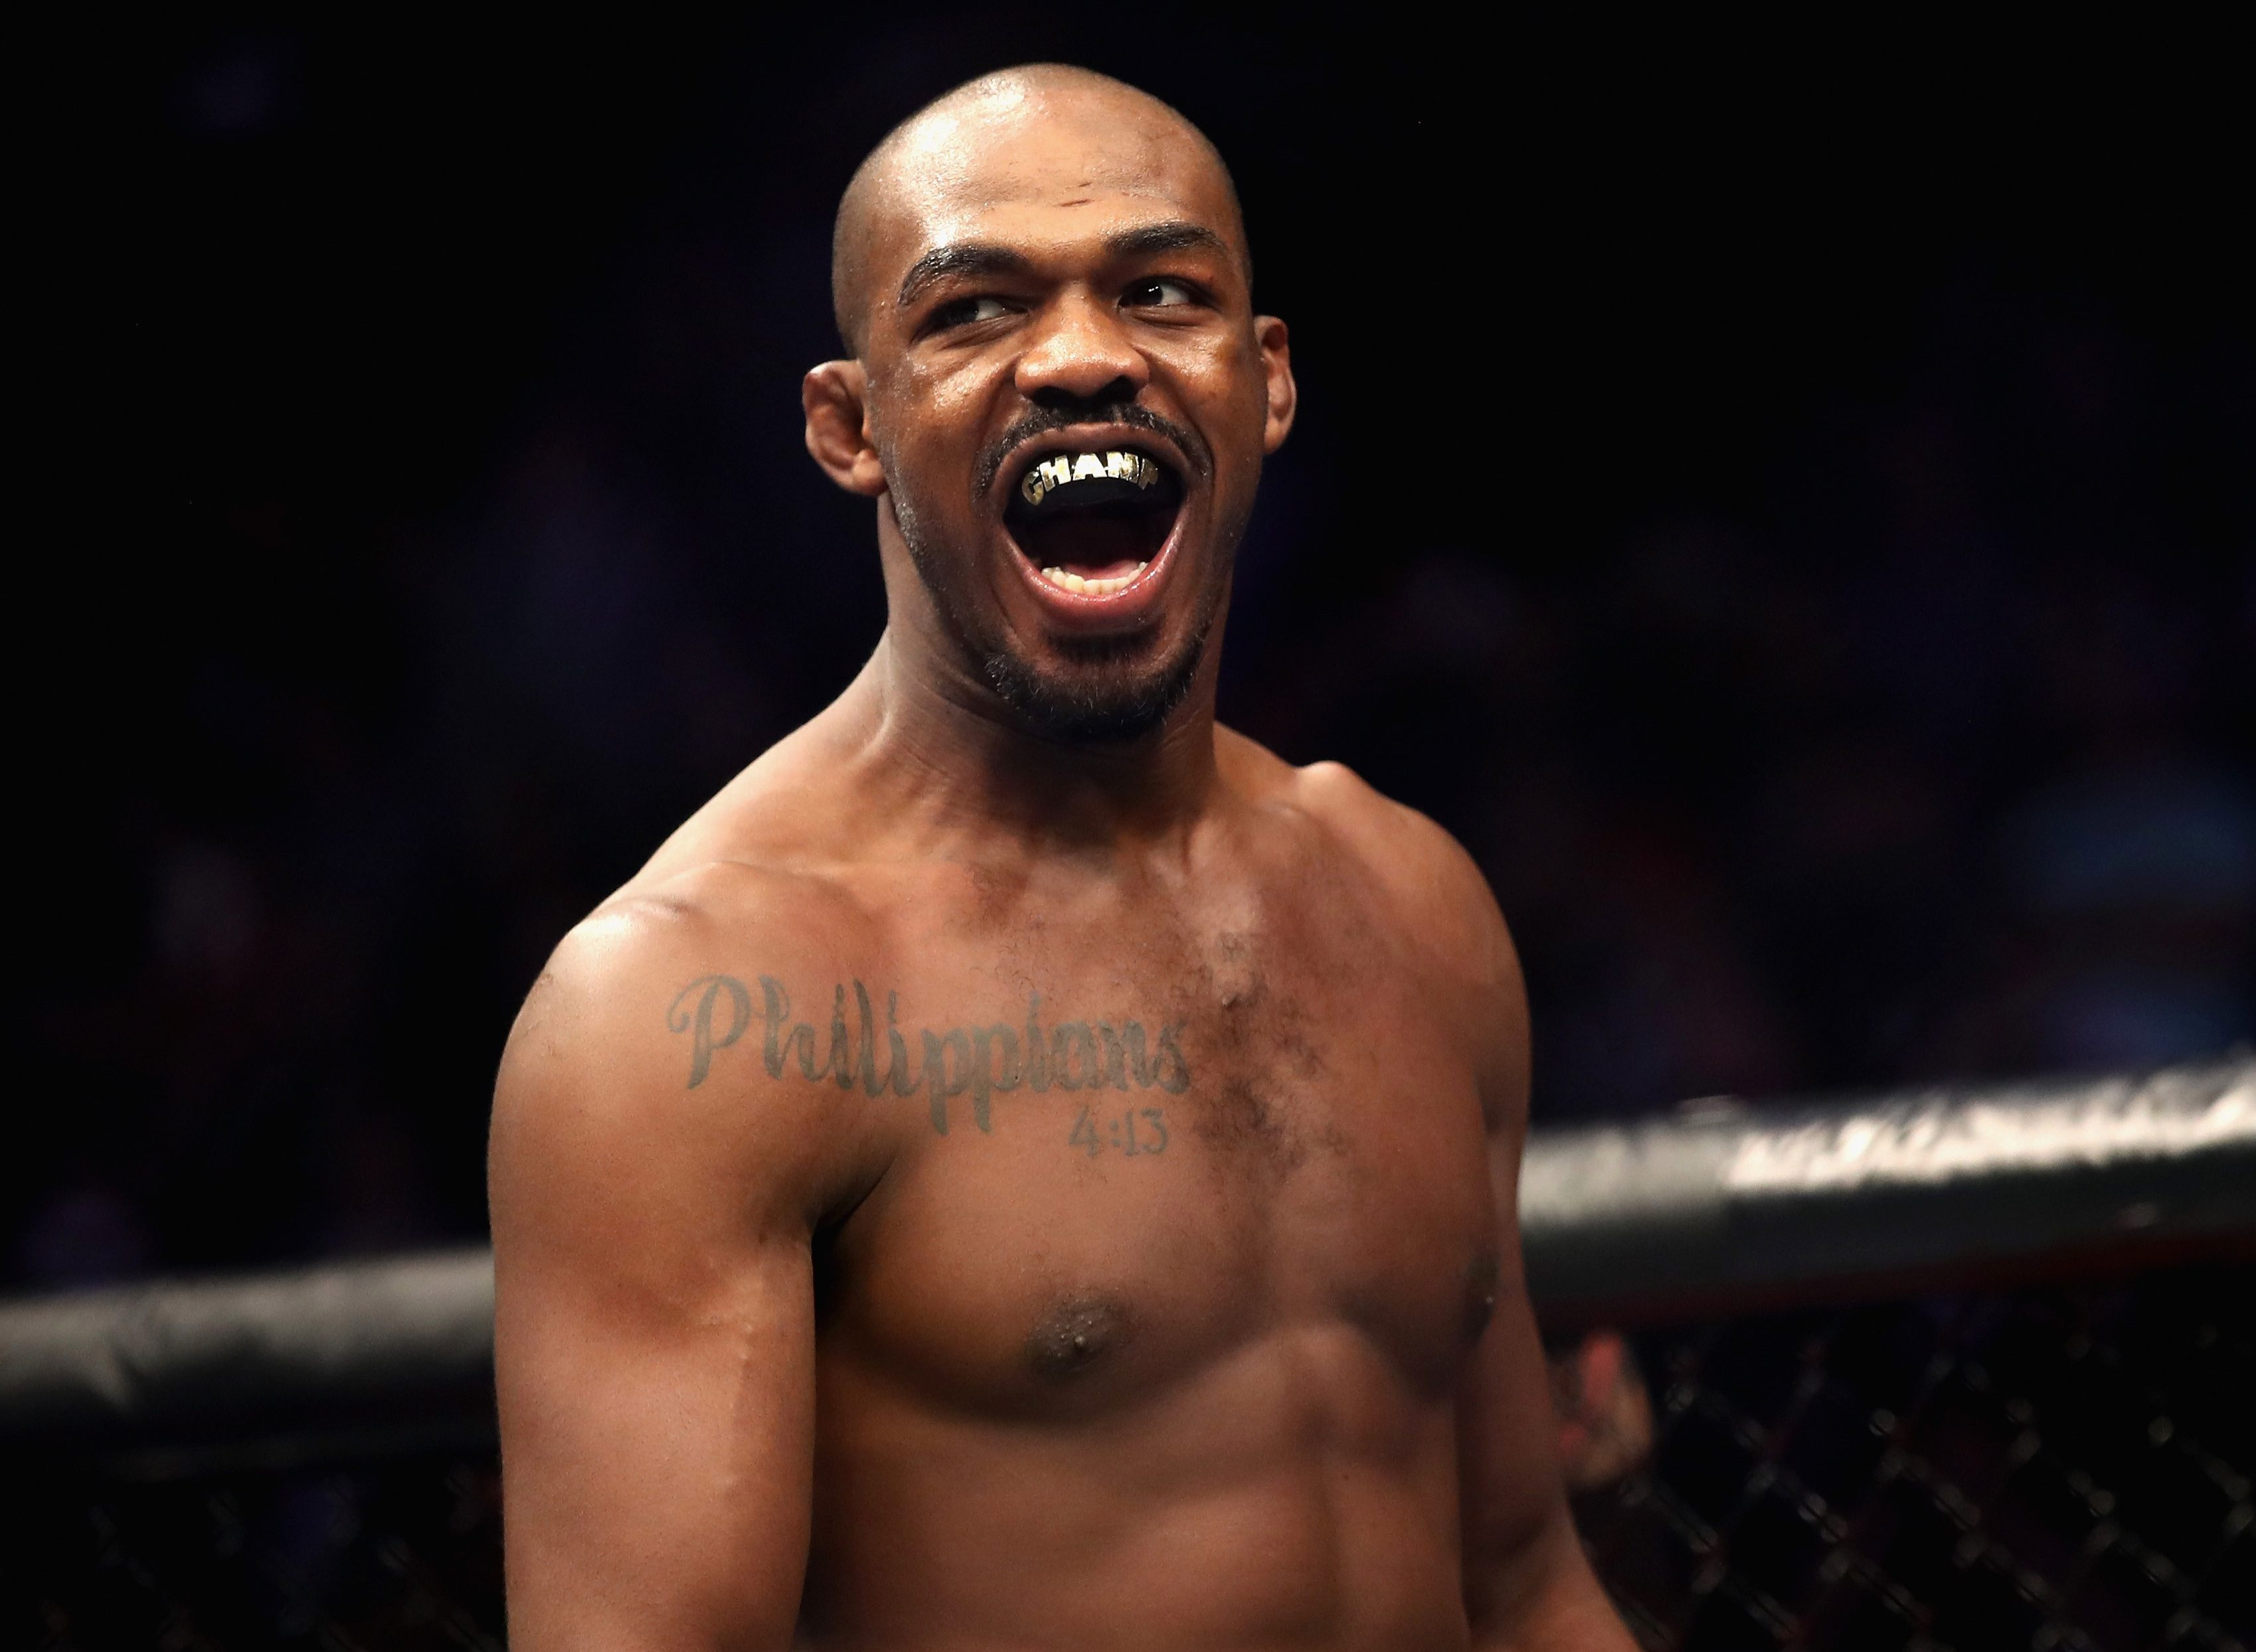 Light-heavyweight champion Jones looks set to miss out on the mega fight with ex-UFC champ Lesnar